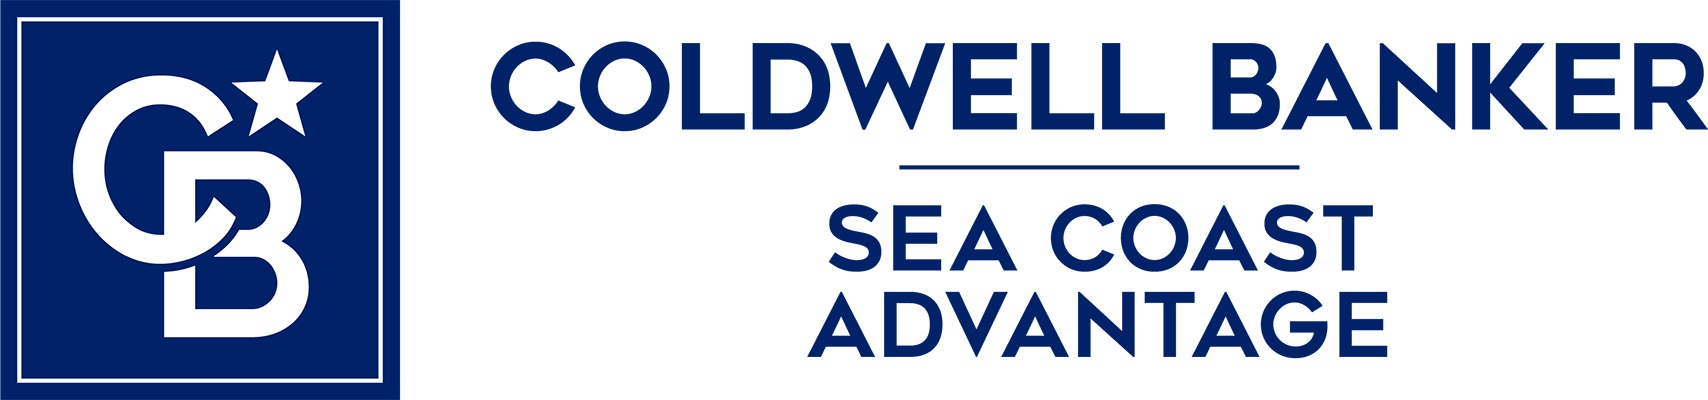 Shawn Horton - Coldwell Banker Sea Coast Advantage Realty Logo